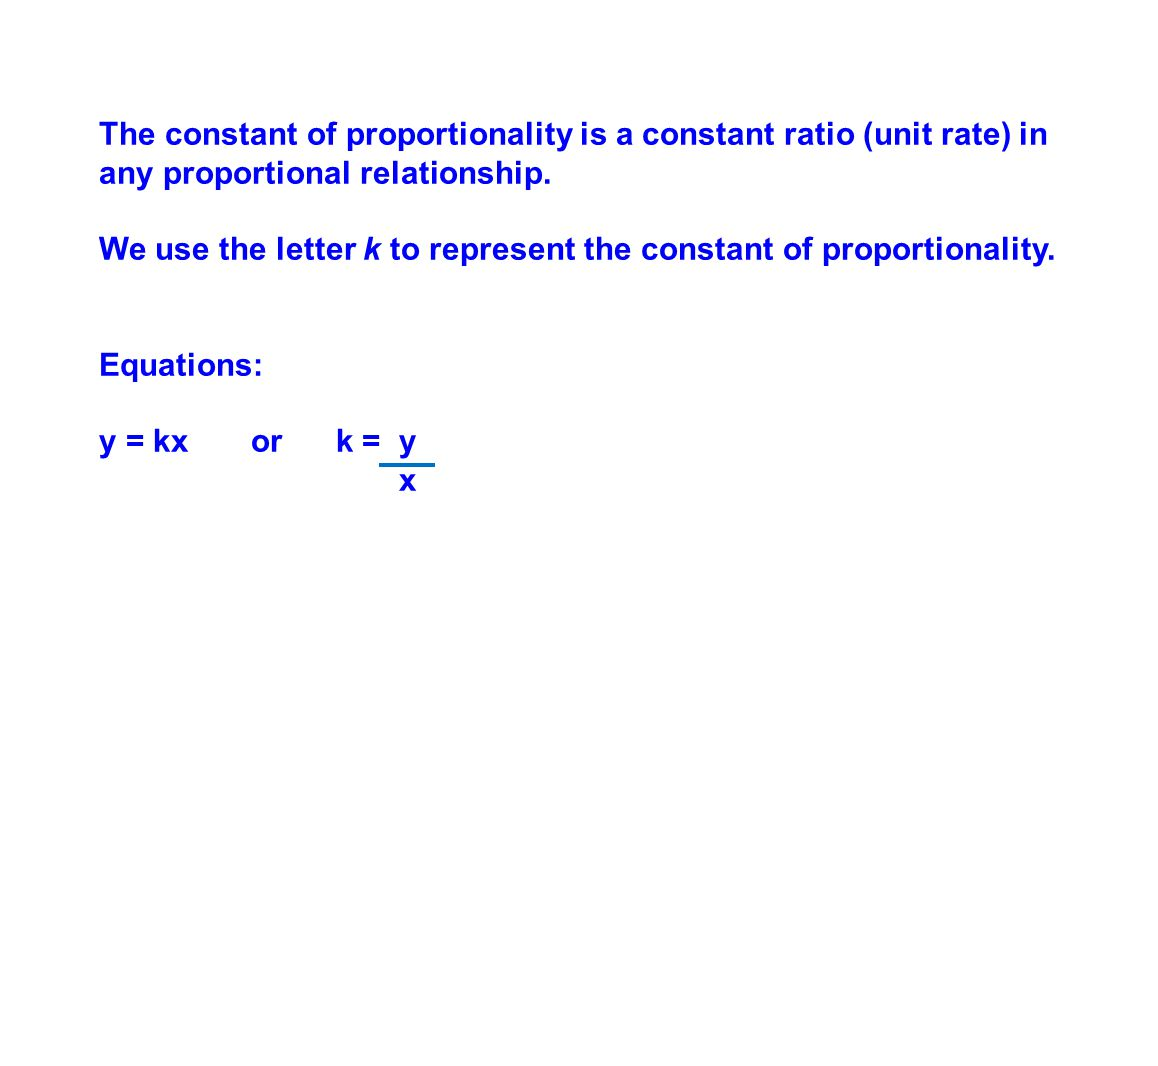 The constant of proportionality is a constant ratio (unit rate) in any proportional relationship.